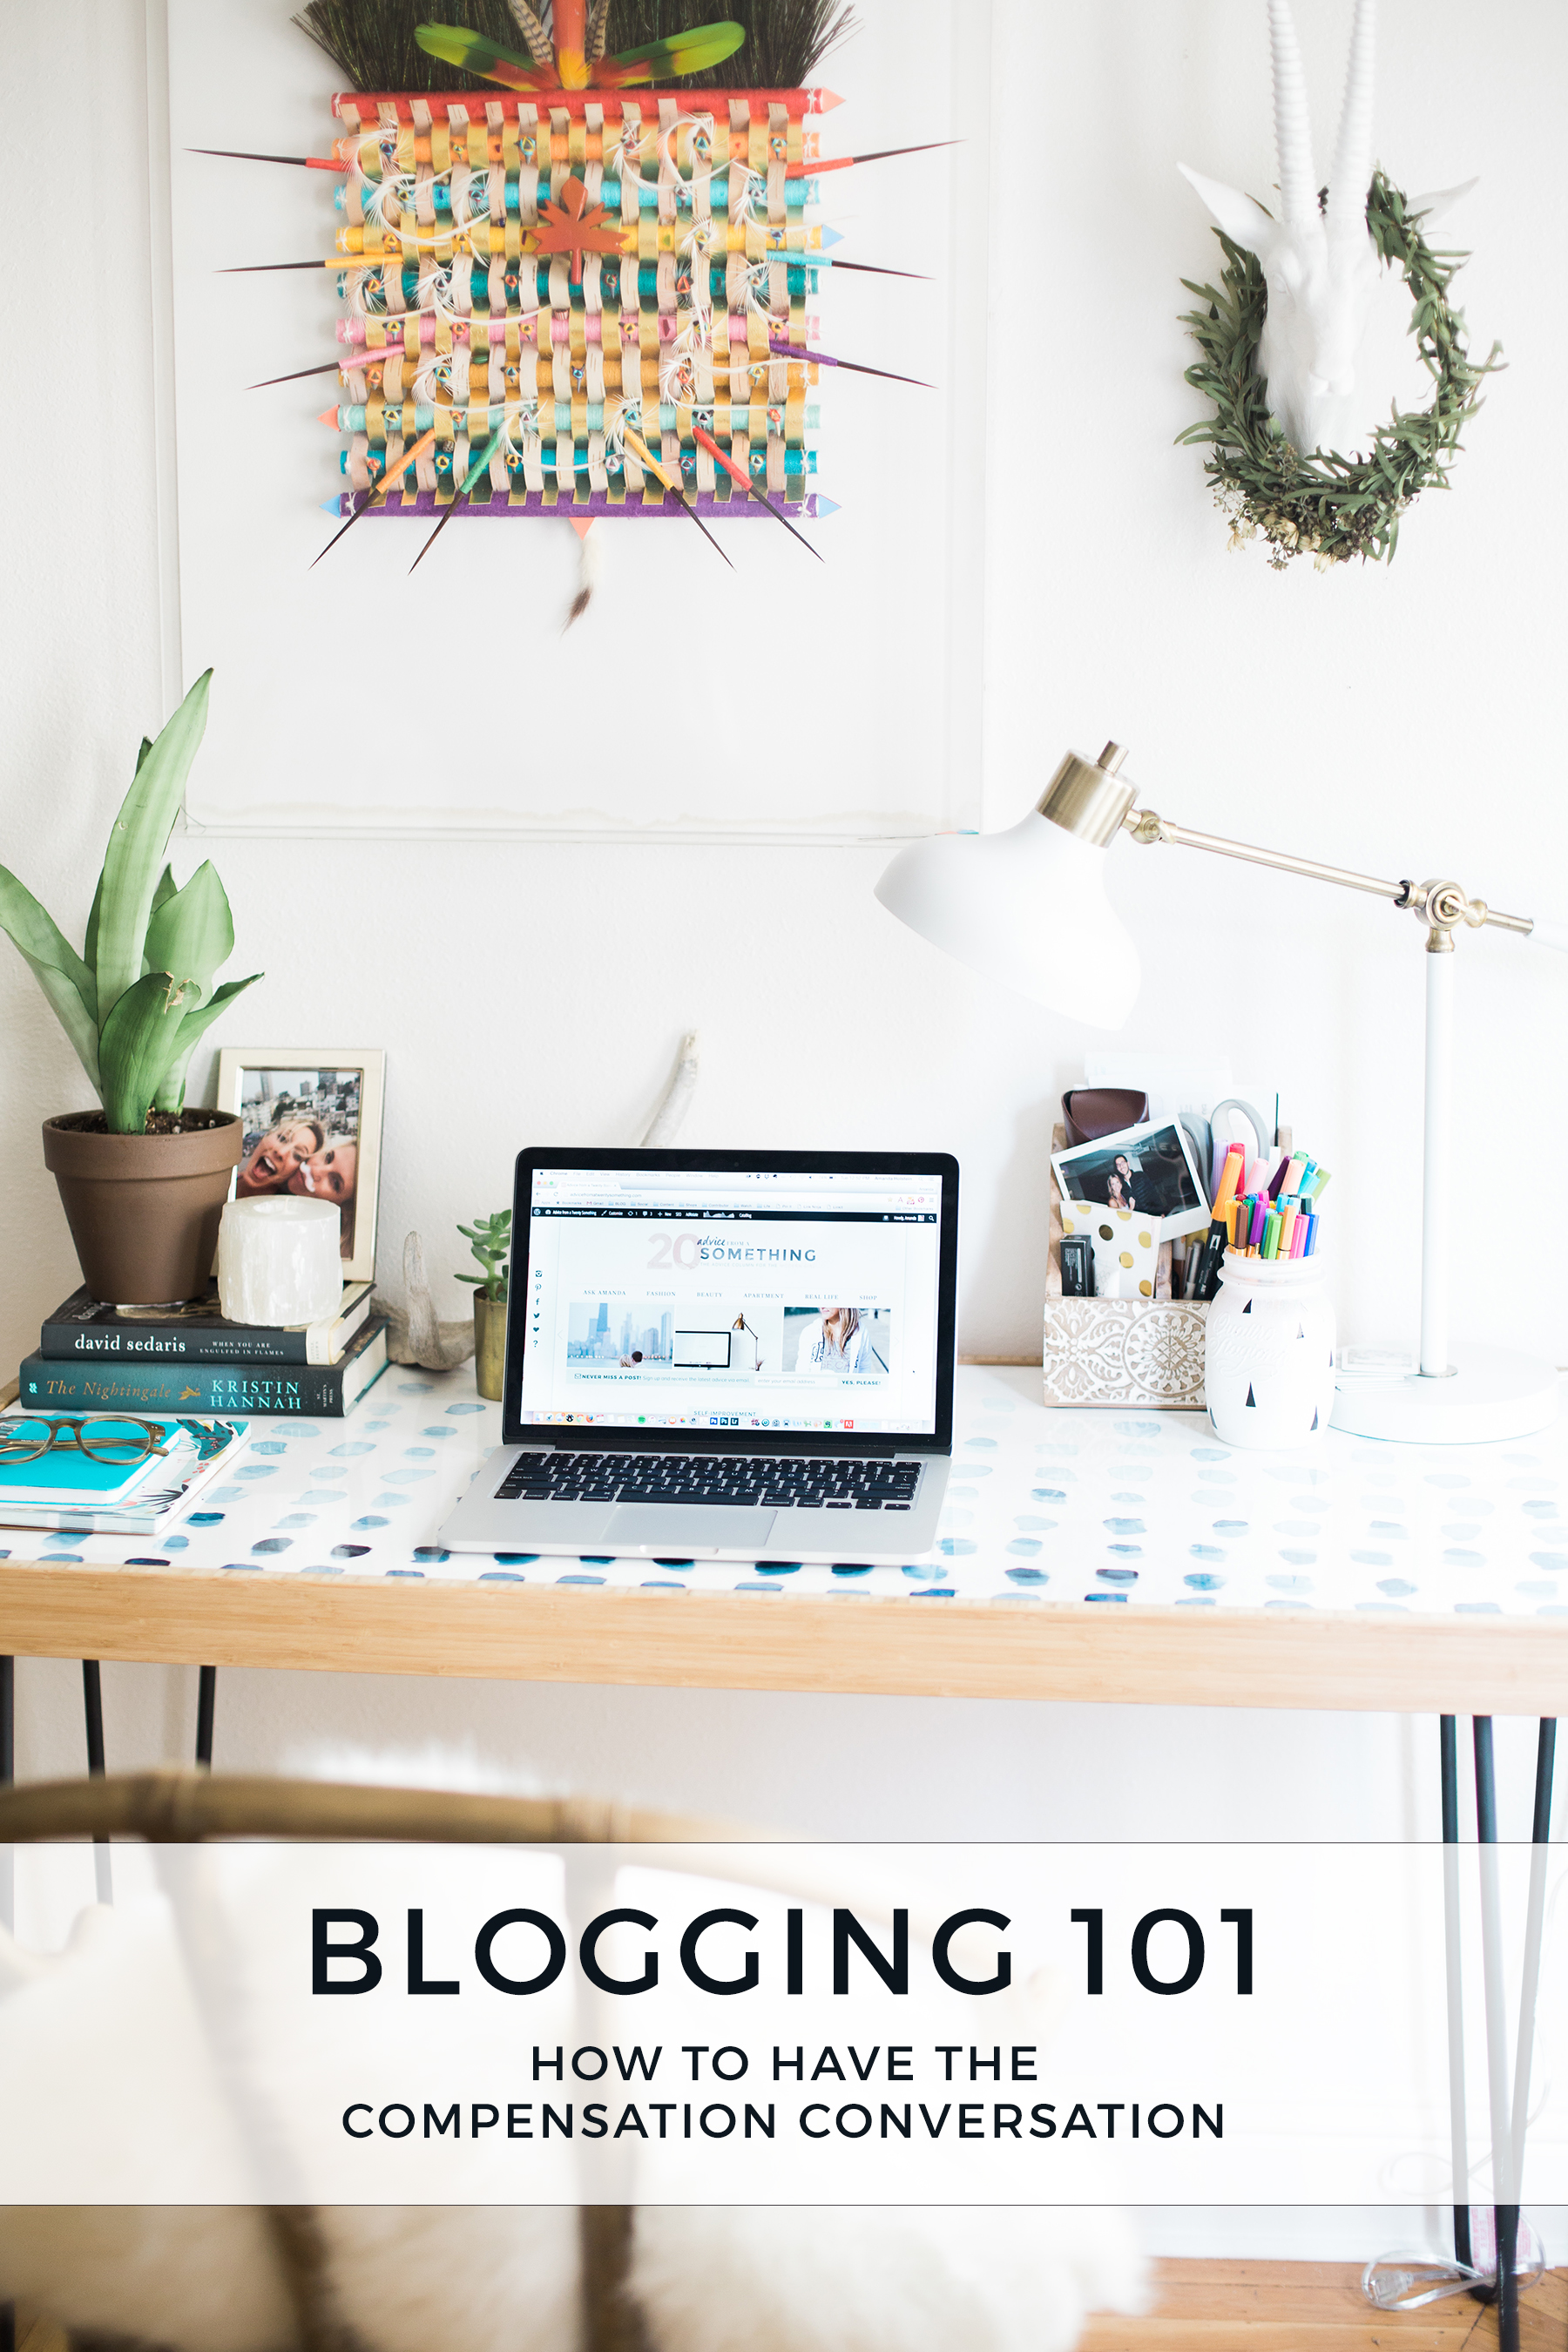 blogging 101, blogging advice, tips for new bloggers, blog compensation, blogger compensation, blog campaigns, blogs and brands, boho desk, desk decor, bright and white, deny designs desk, target lamp, white lamp, computer on desk, stylish desk, stylish home office, office space, bohemian decor, photography by Andrea Posadas for Advicefroma20Something.com